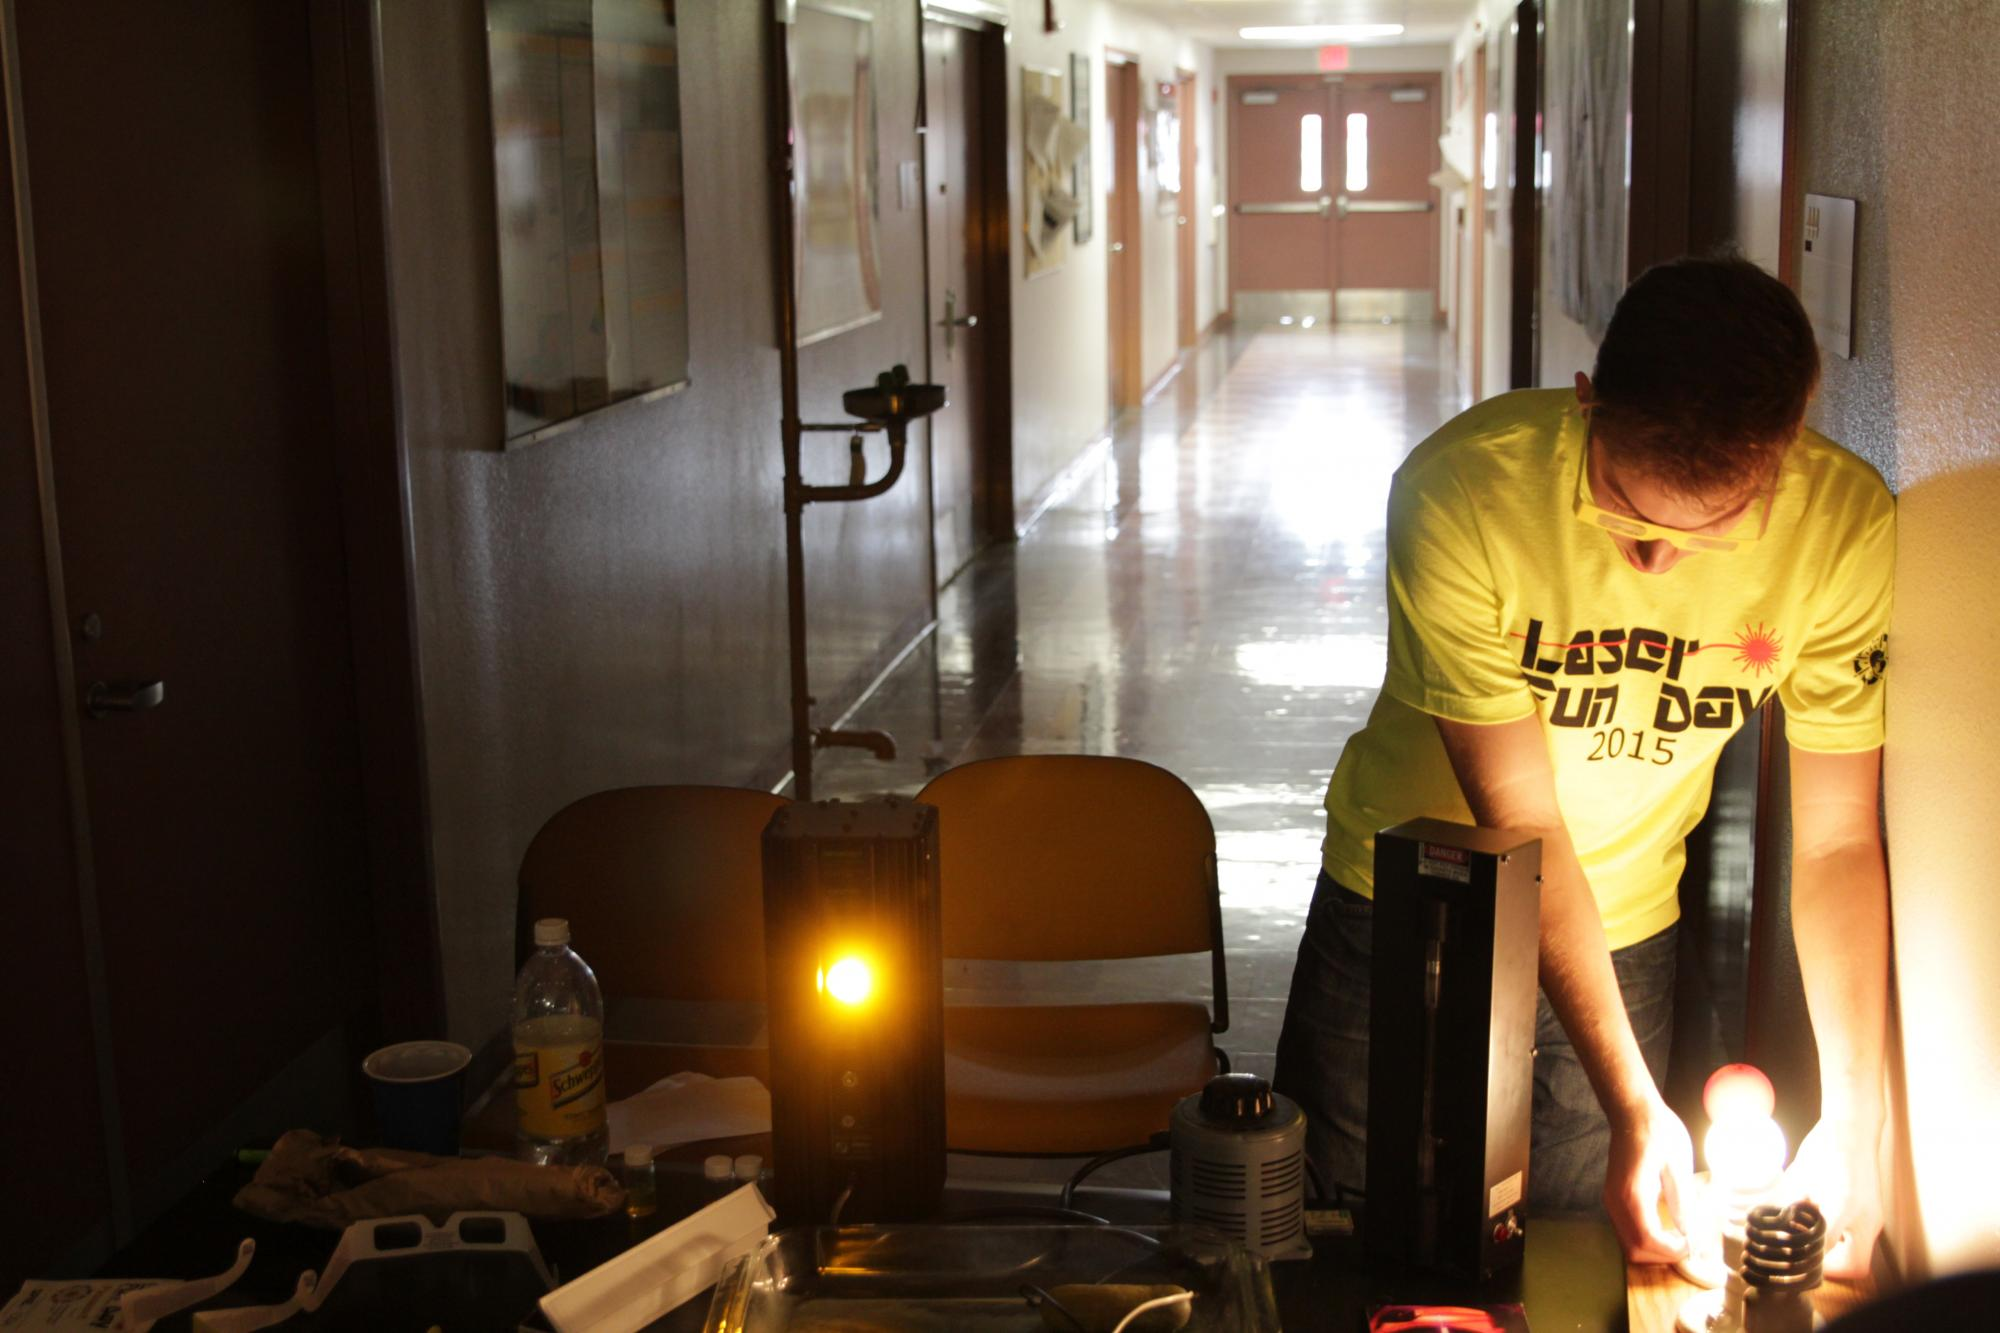 A student volunteer sets up an experiment for Laser Fun Day.